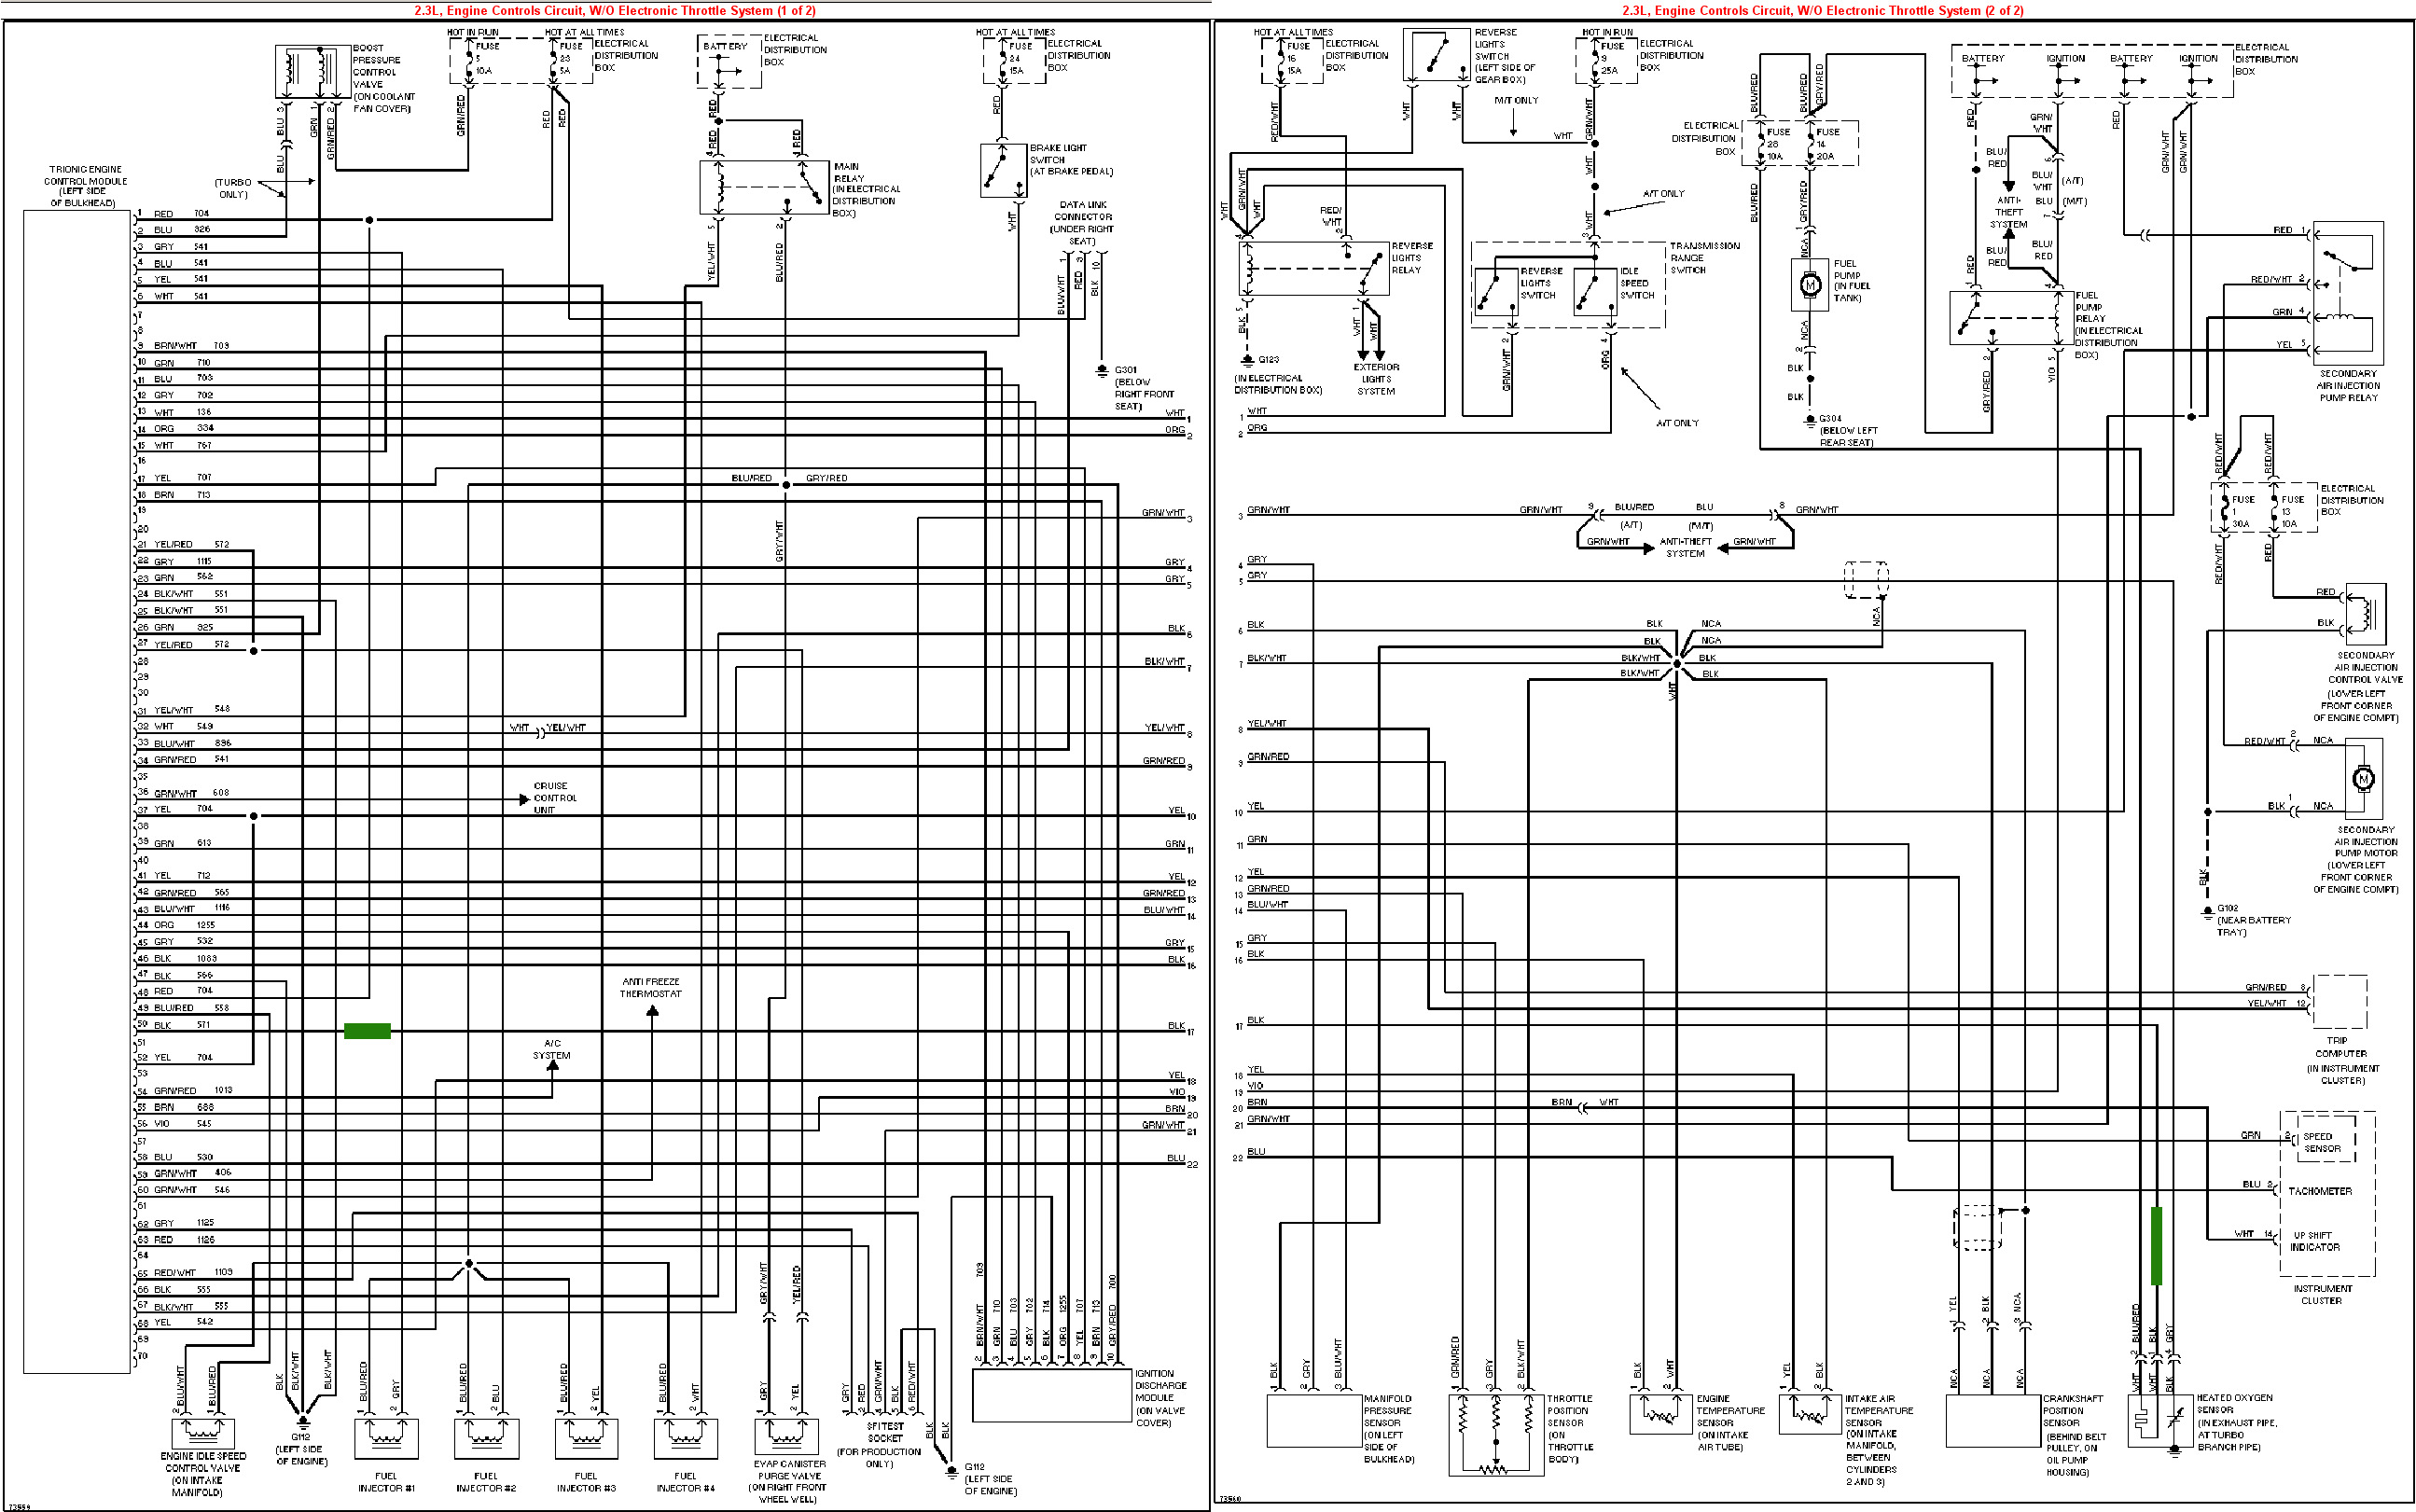 saab 95 wiring diagram go wiring diagram 99 saab 9-5 saab 9 5 headlight wiring #12